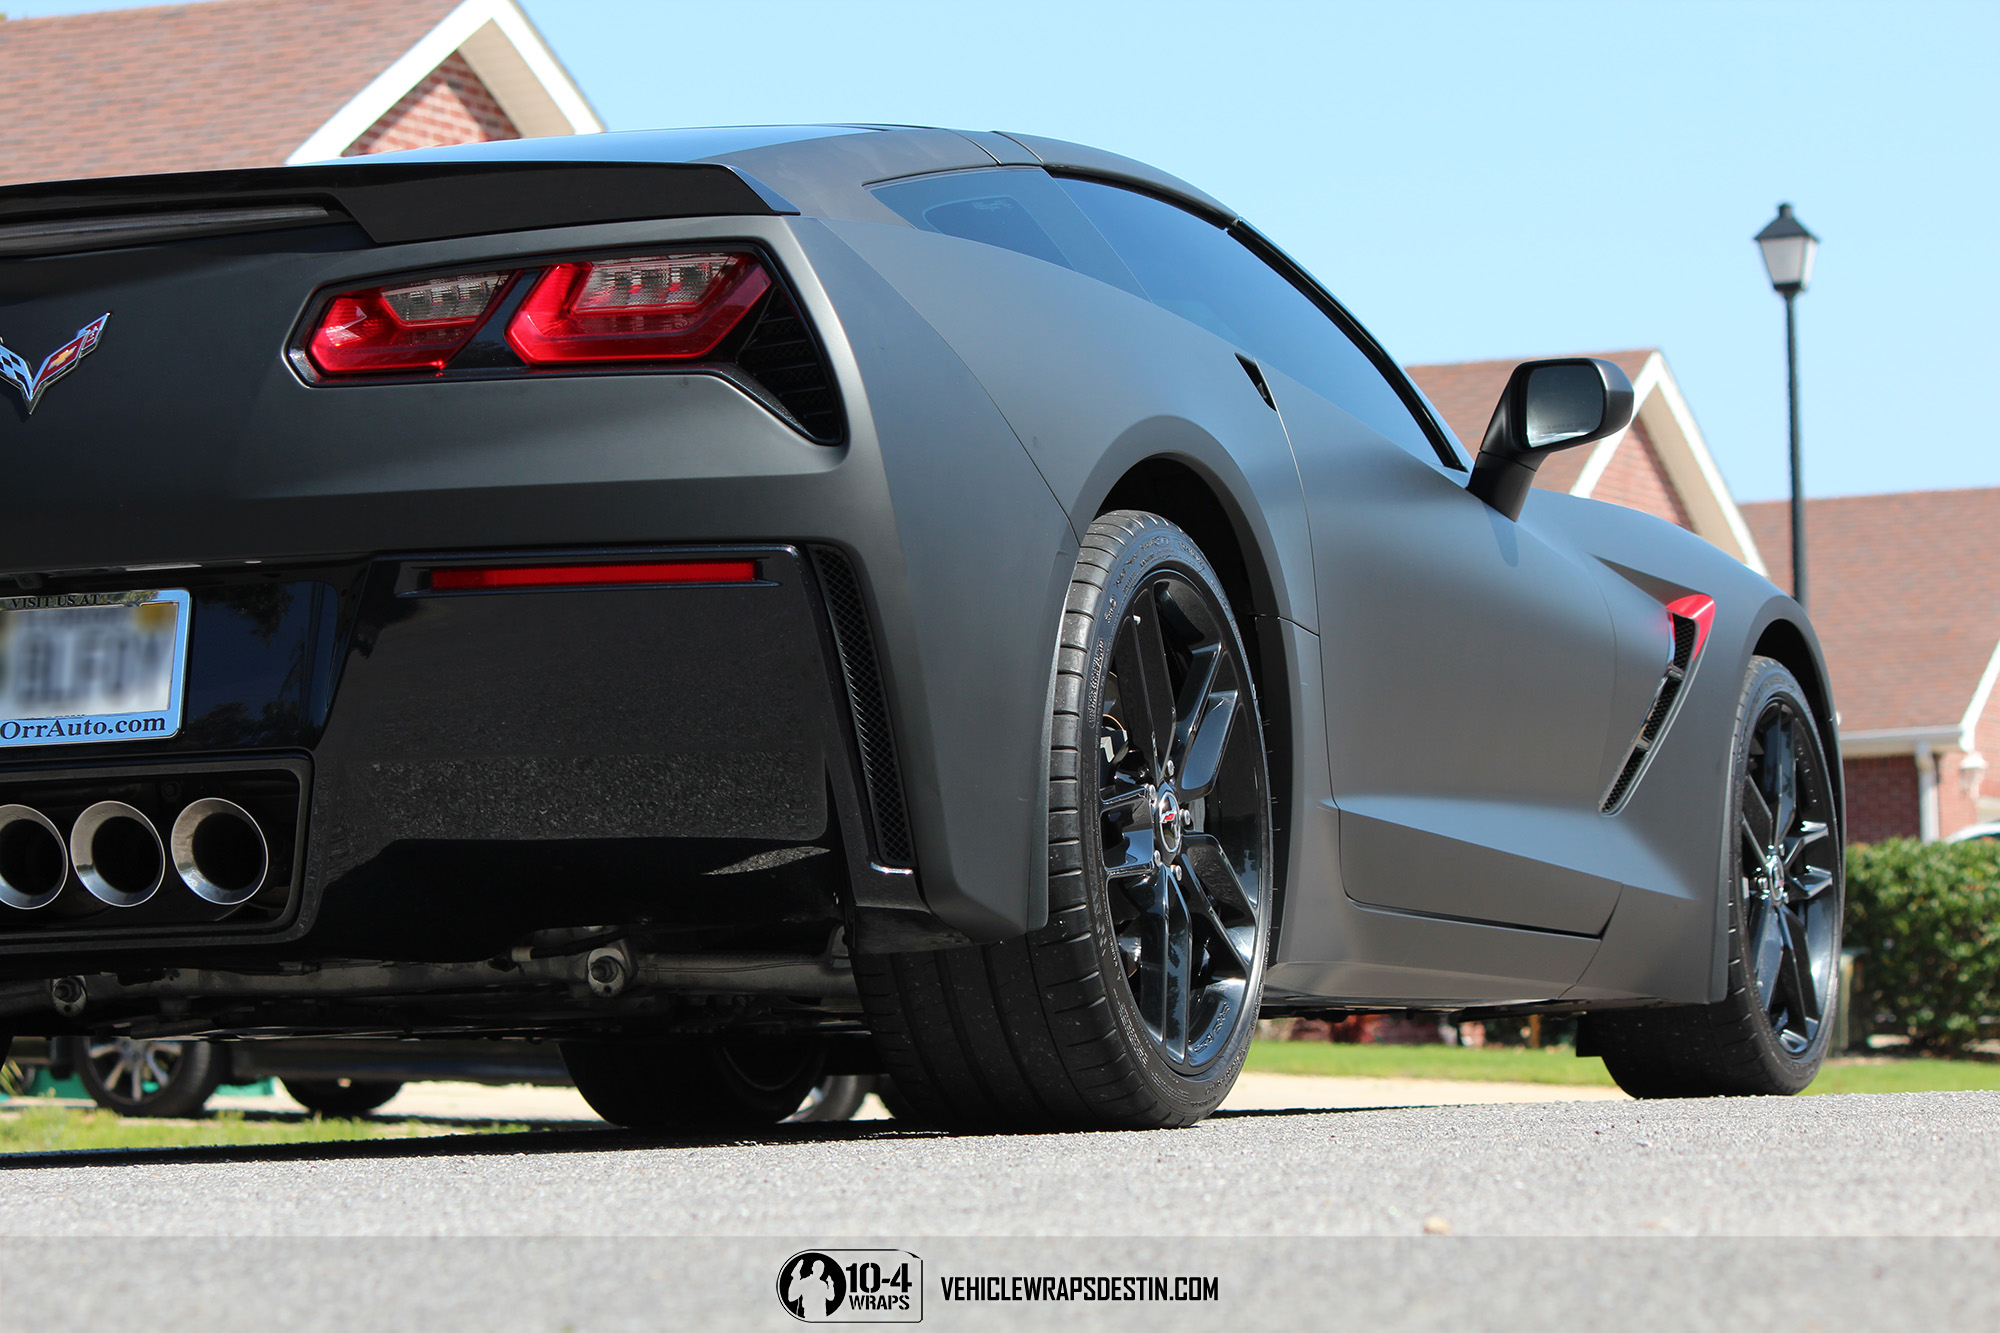 Corvette C7 Matte Black Vinyl Wrap 10 4wraps Vehicle